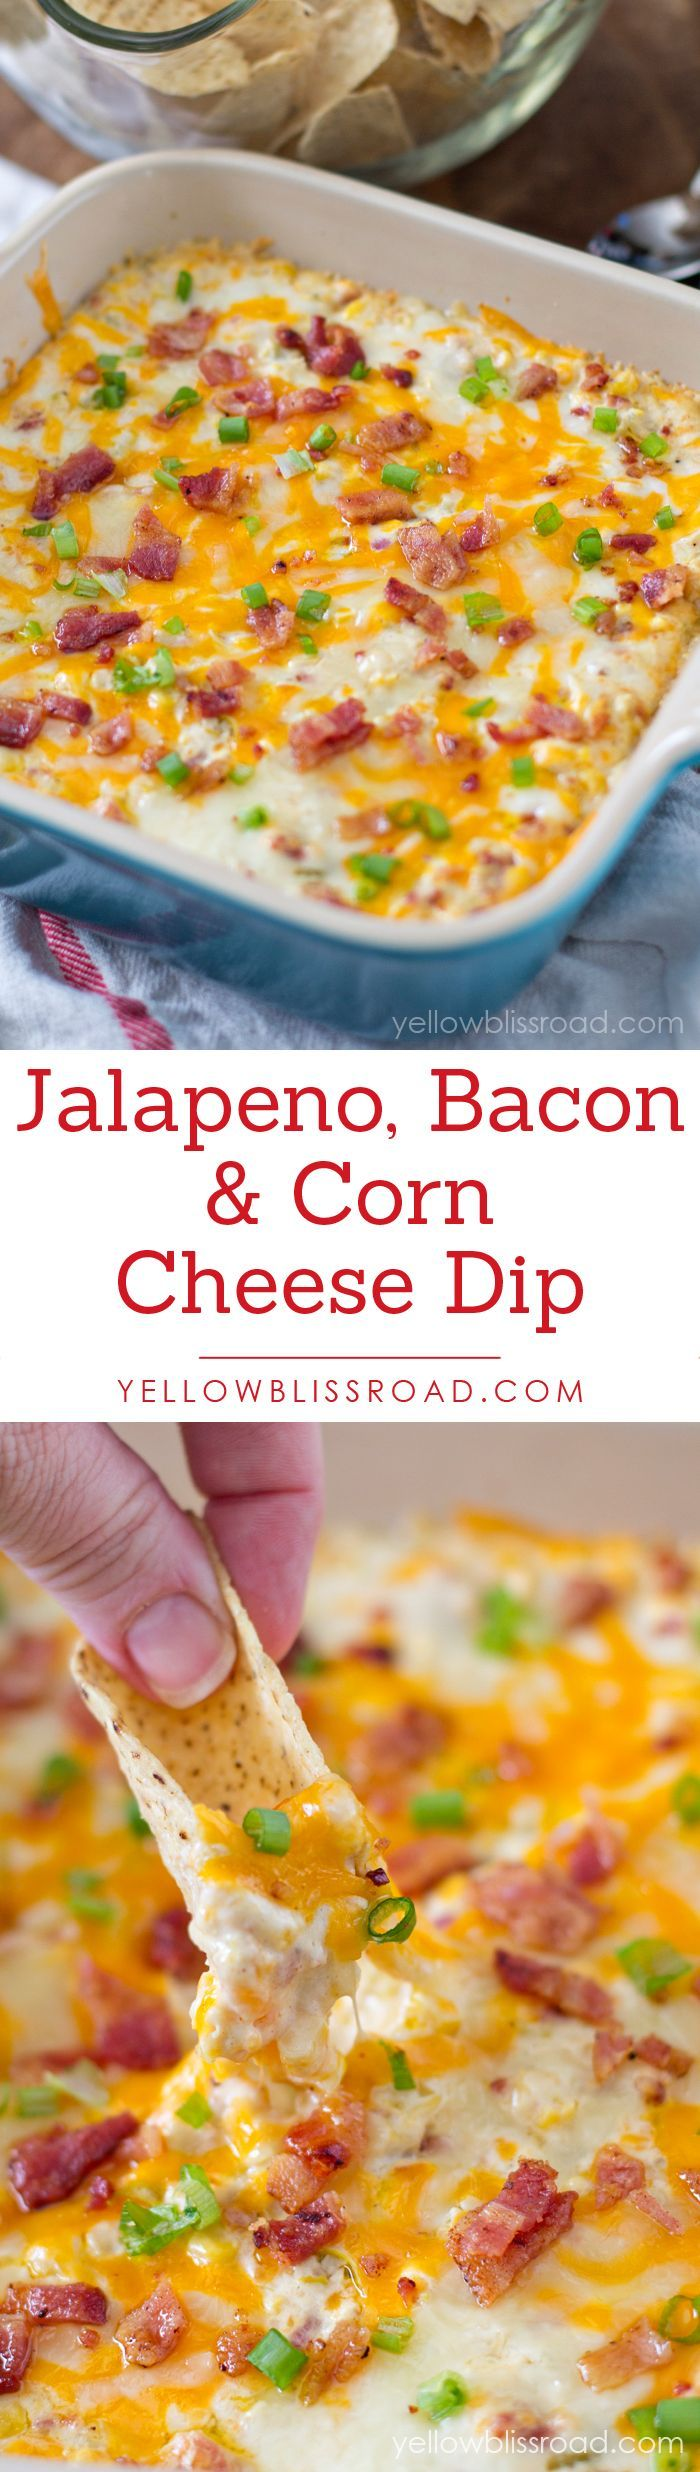 Creamy Jalapeno Bacon and Corn Cheese Dip